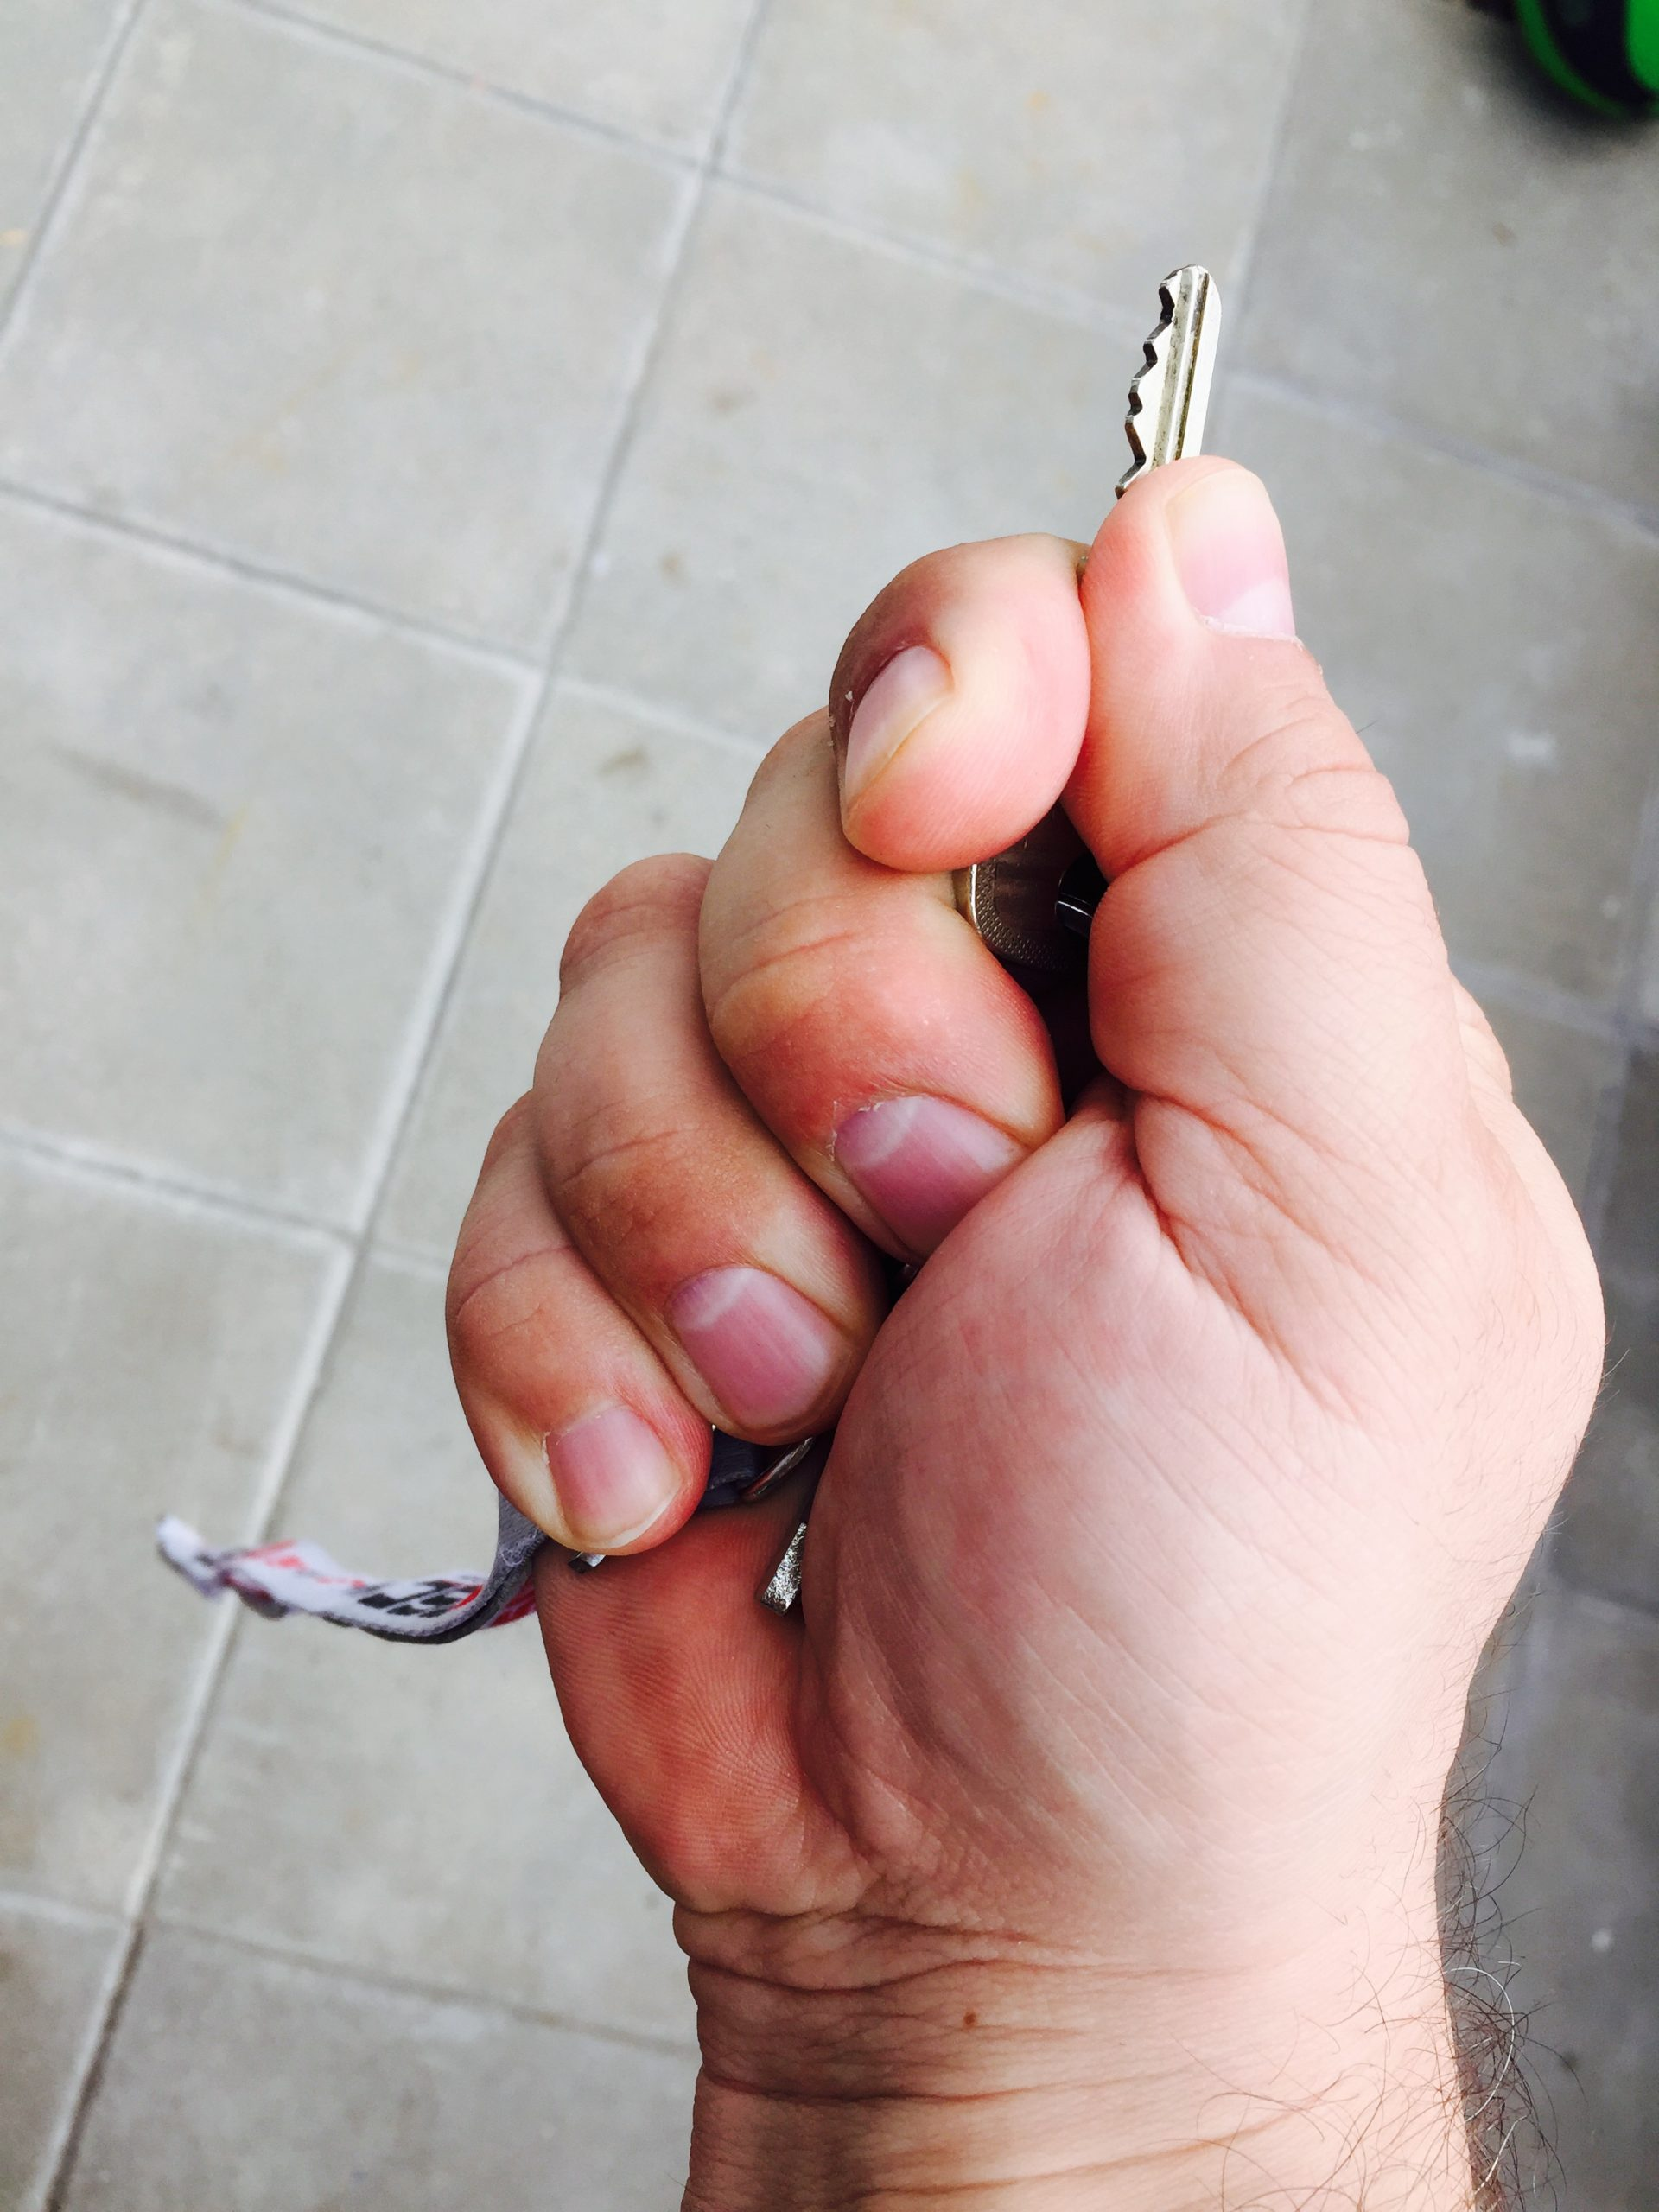 self-defense with a key